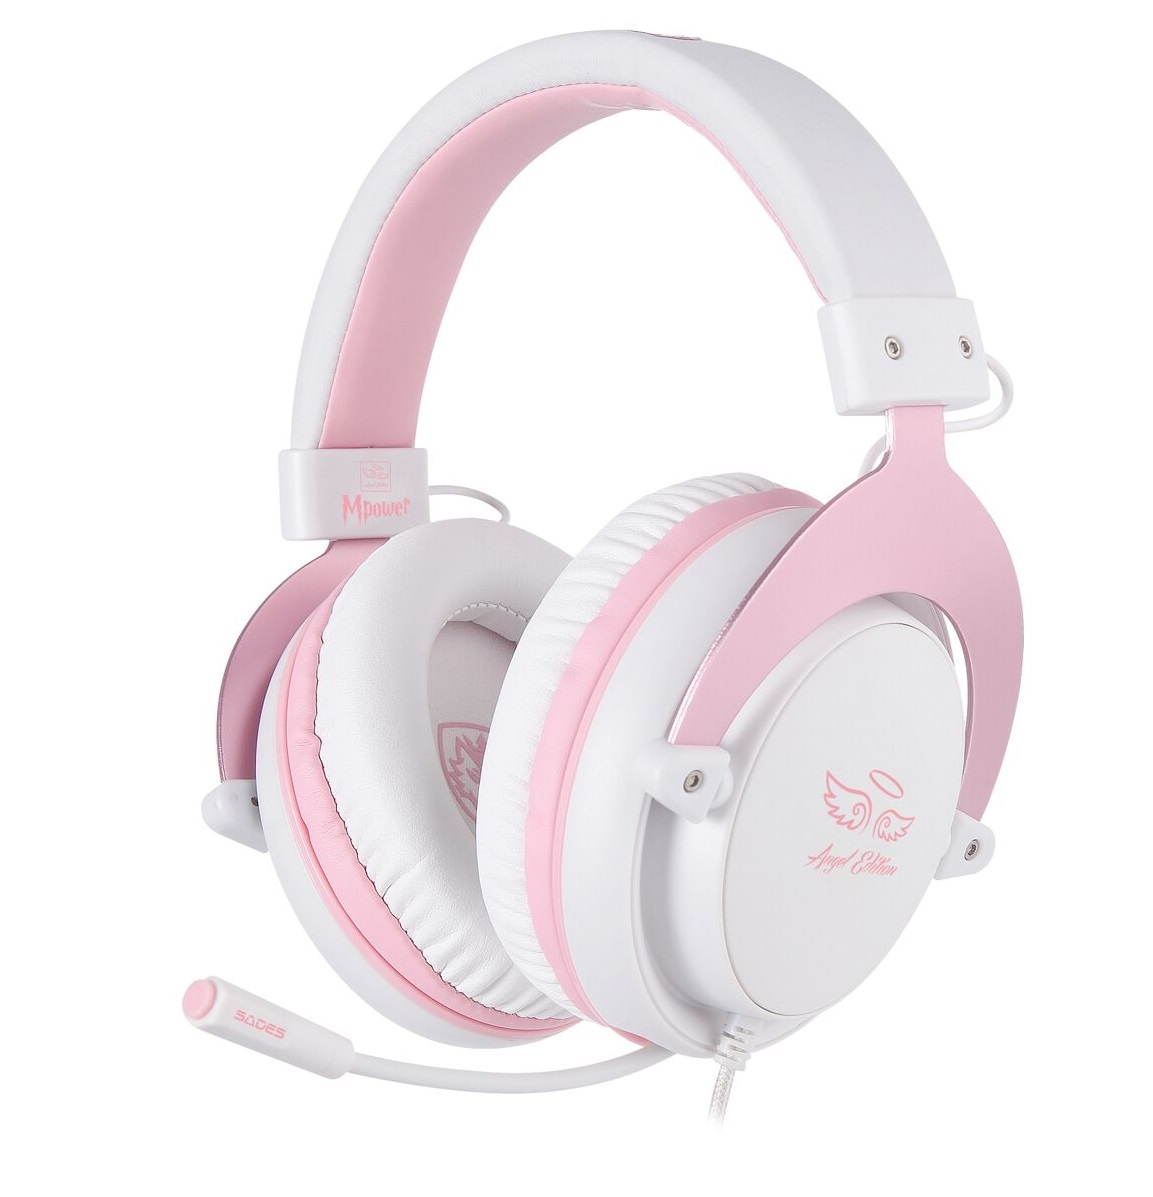 f0f22067a2c SADES M-Power Gaming Headset (Pink)   PS4   In-Stock - Buy Now   at ...